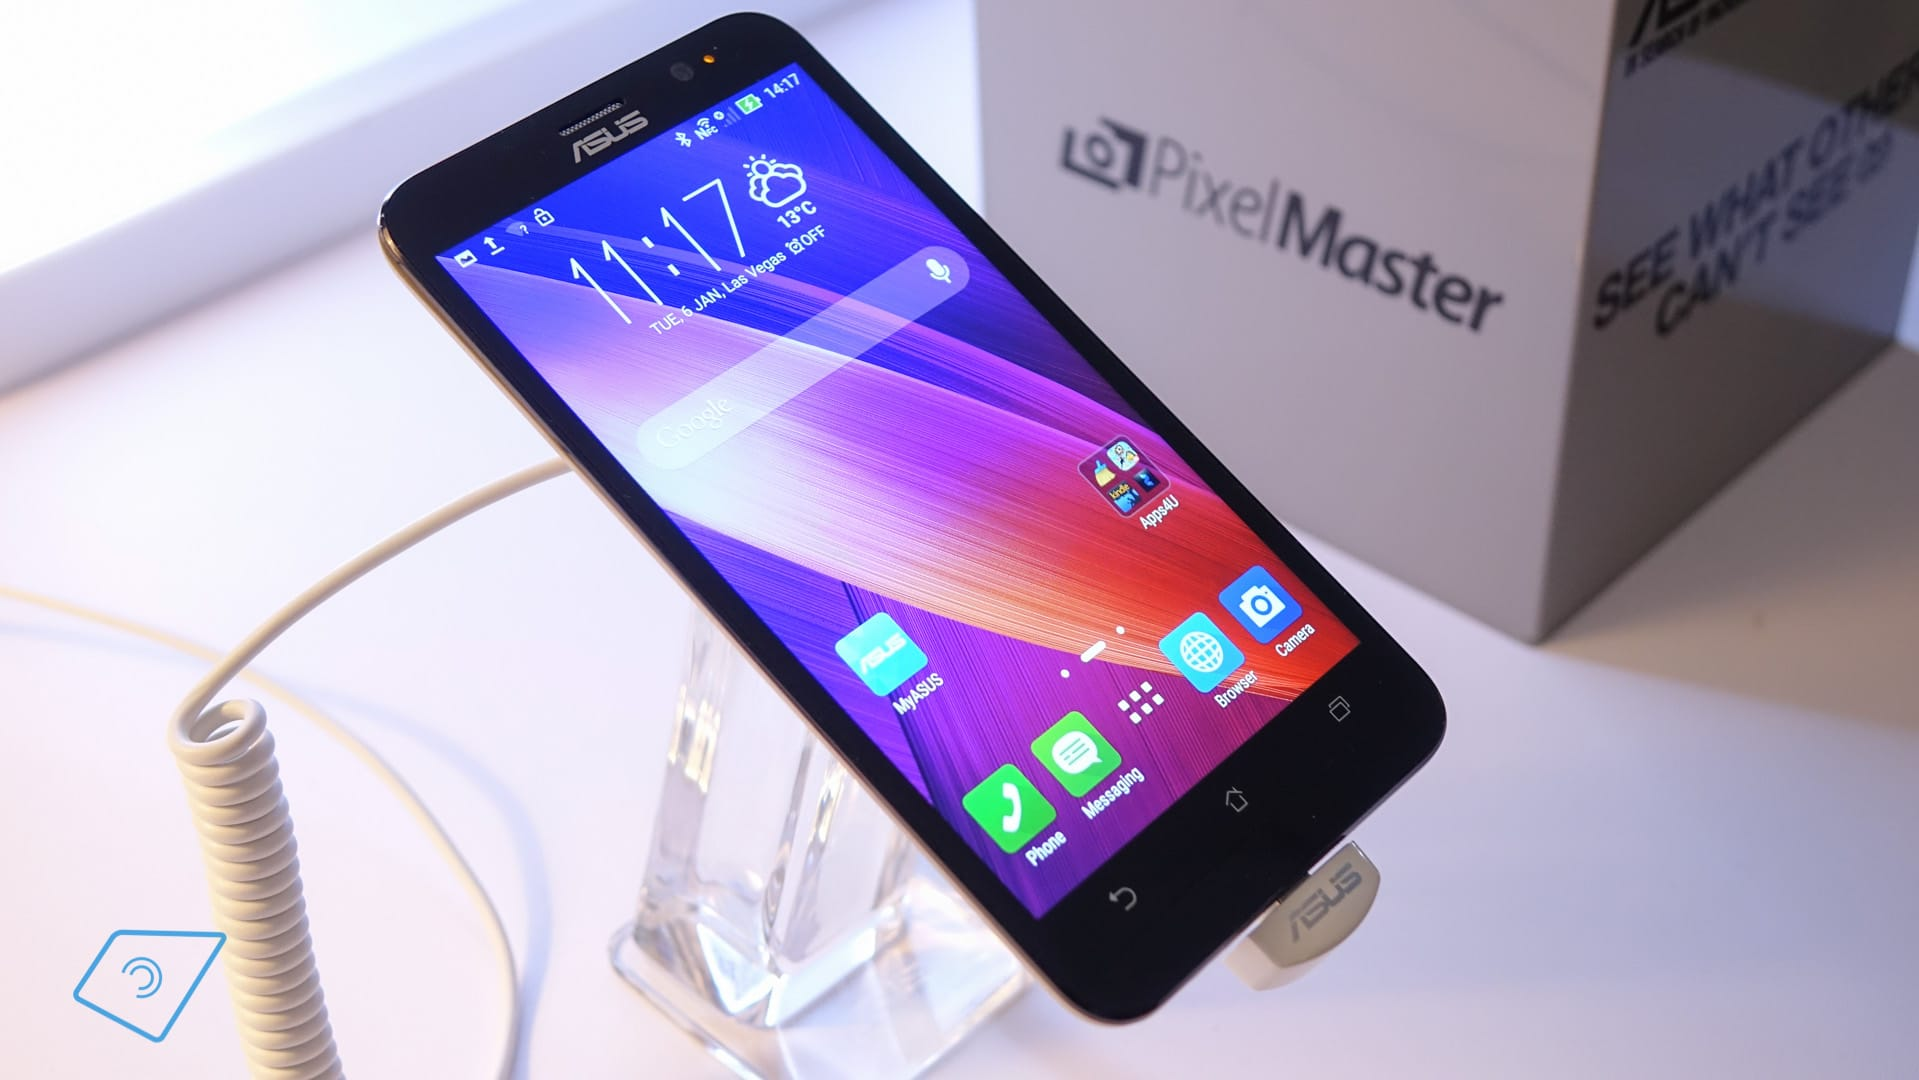 Why You Should Buy Asus Zenfone 2